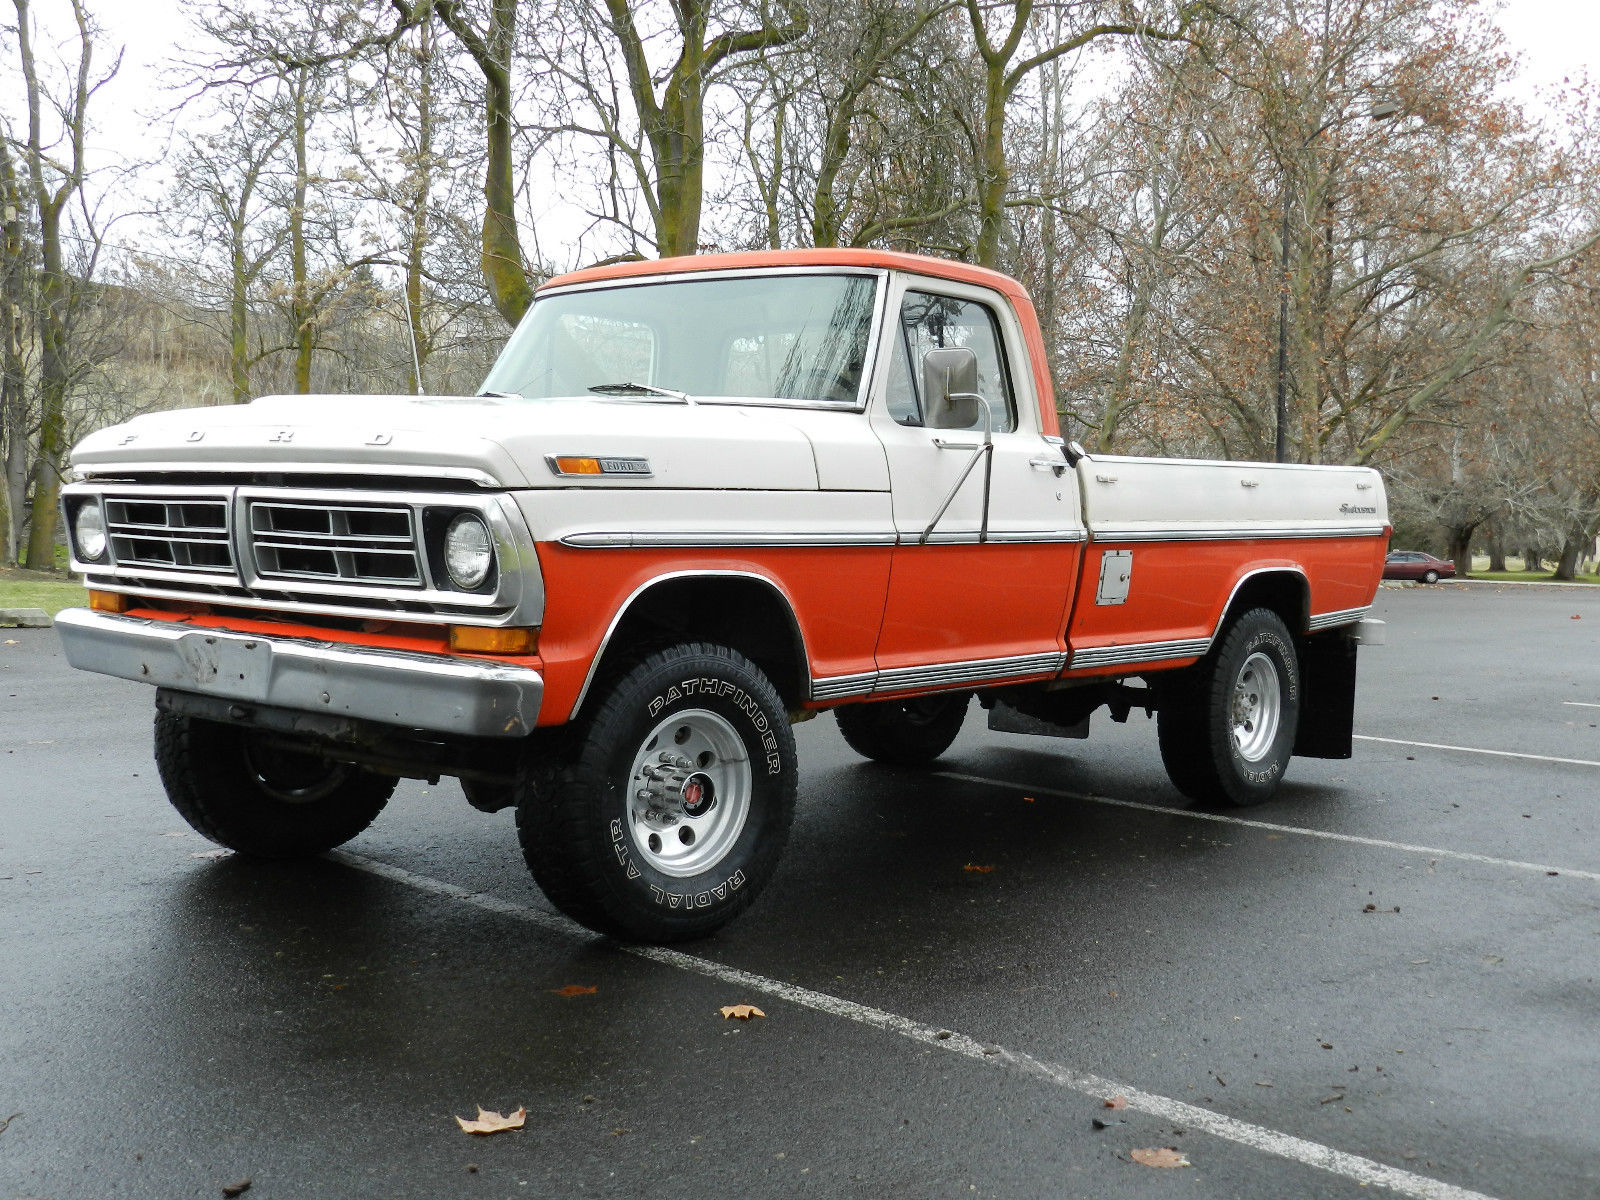 1972 Ford F250 4x4 For Sale >> 1972 Ford f250 SportCustom 4x4 highboy rare find original docs must see classic for sale in ...